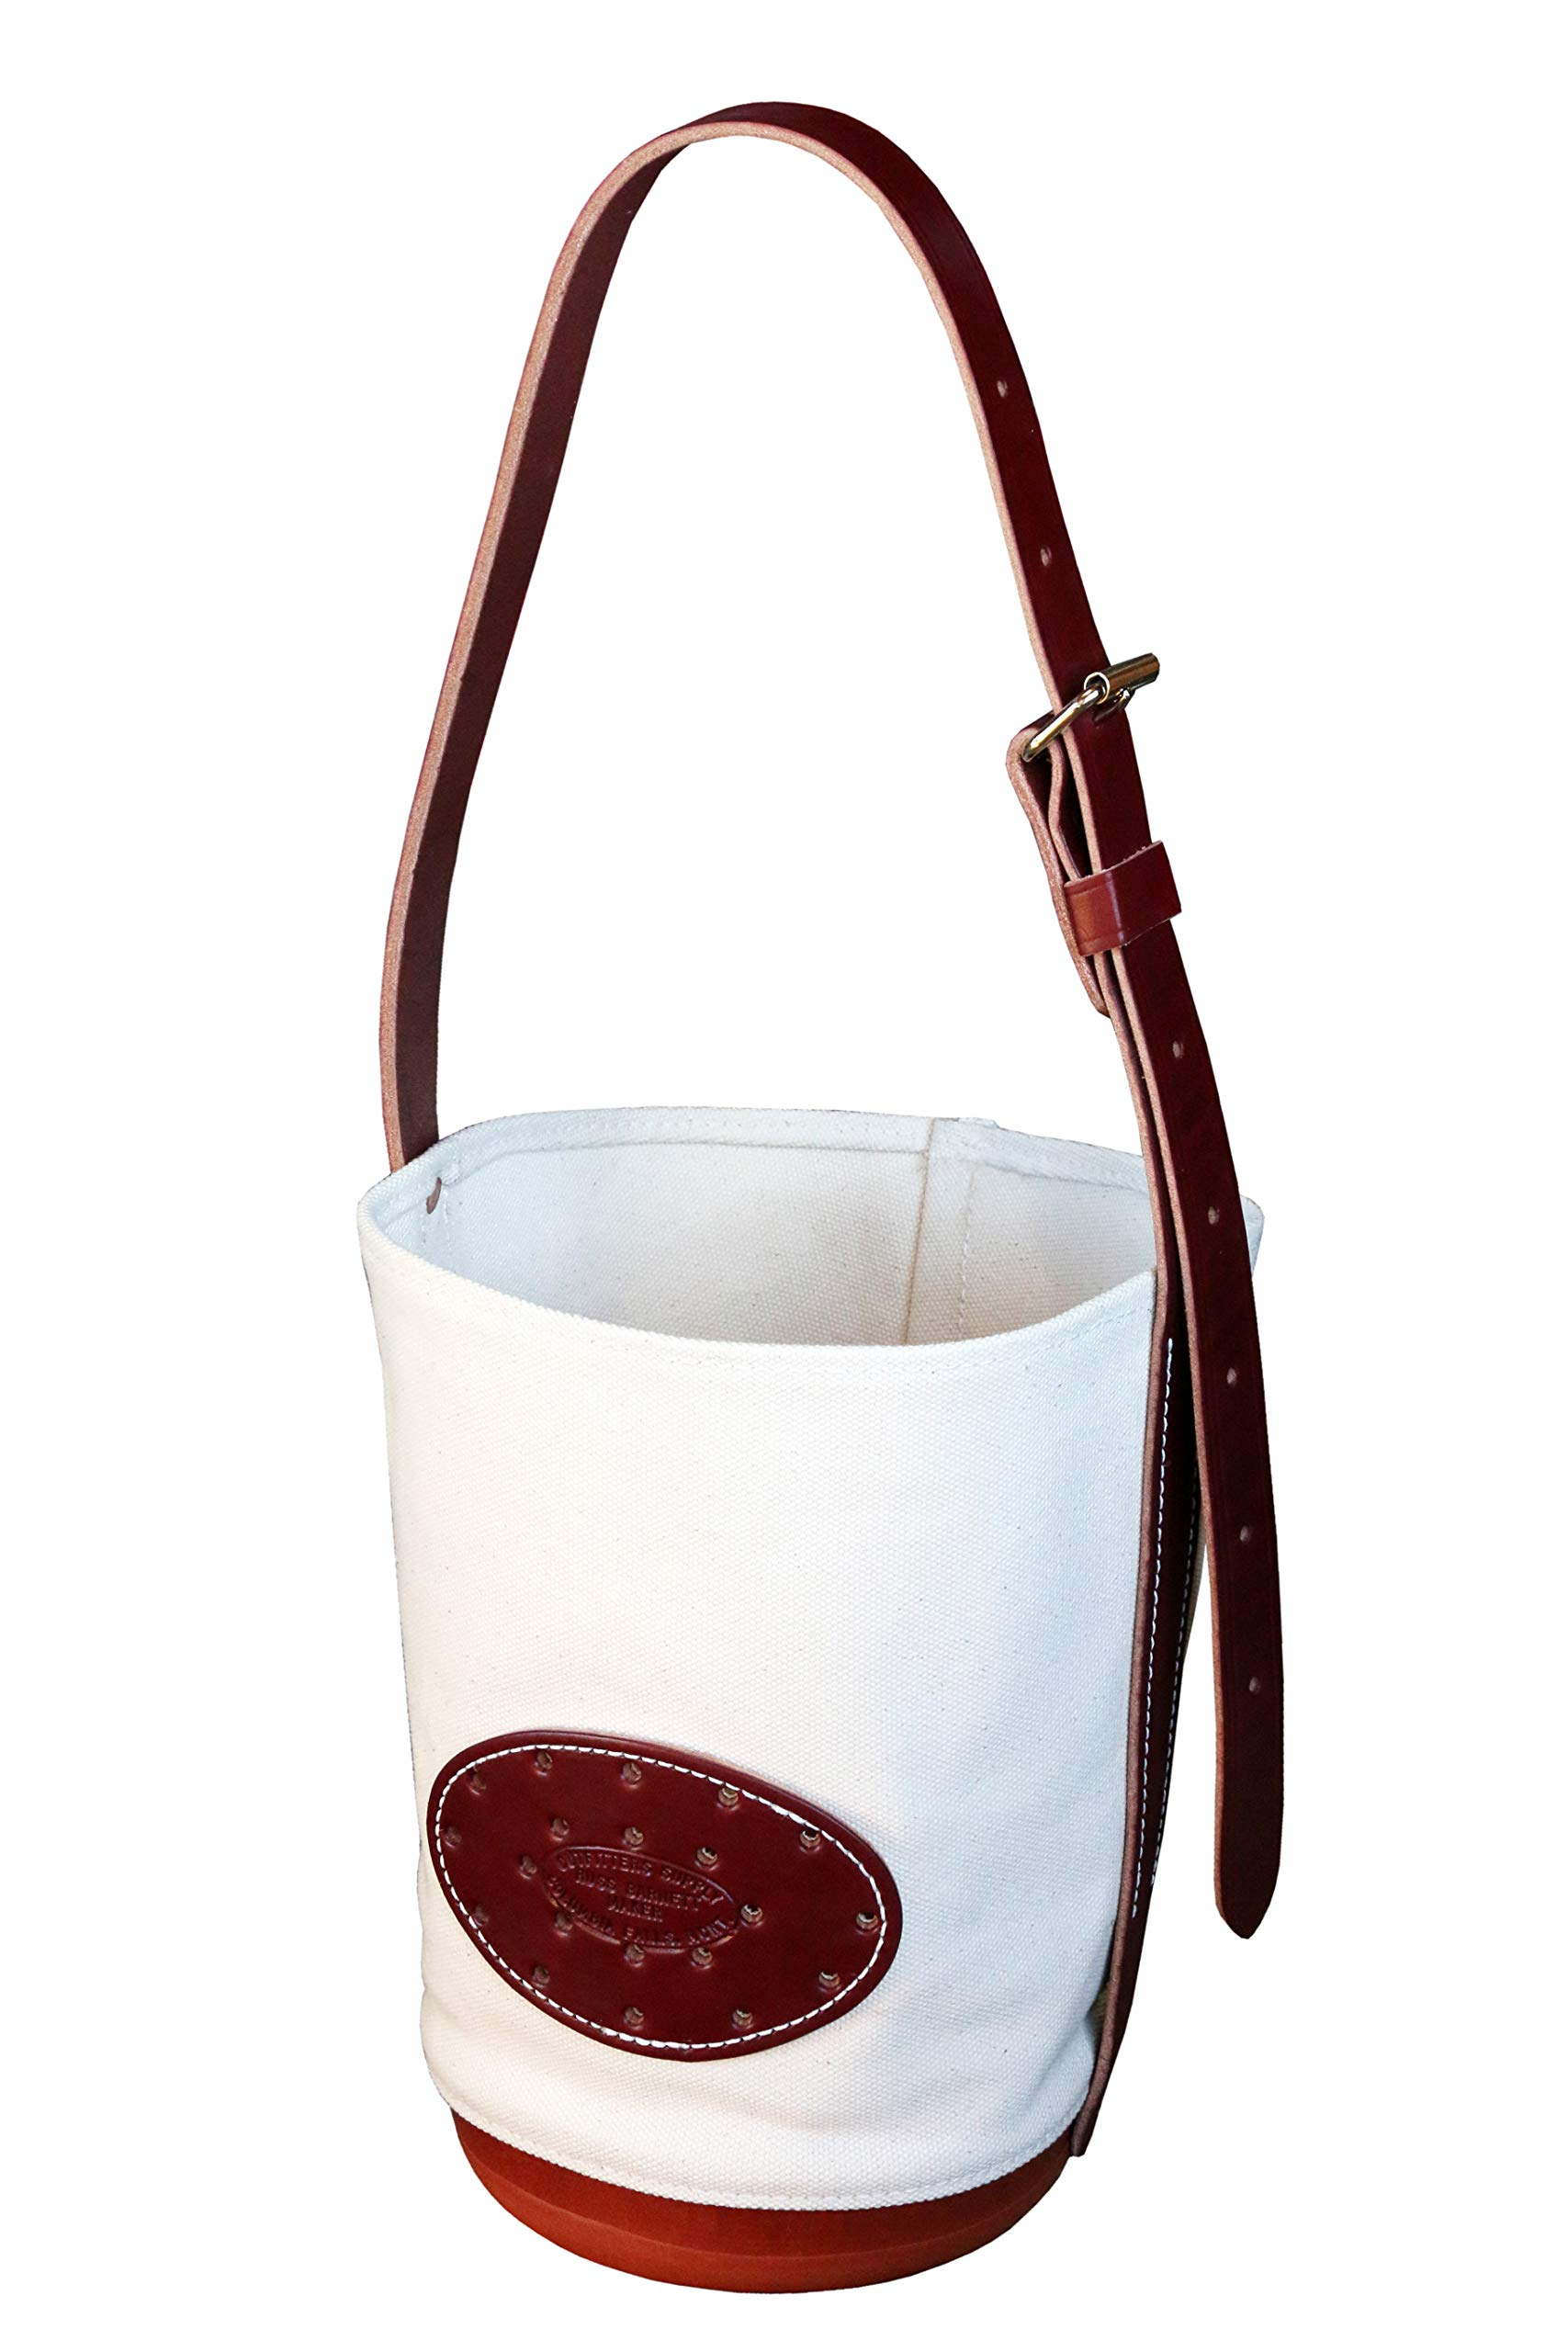 Outfitters Supply Classic Canvas & Leather Horse Or Mule Feedbag, Handmade in Montana USA Leather and Hardware, Adjustable Strap, Solid Molded Leather Bottom with Side Ventilation